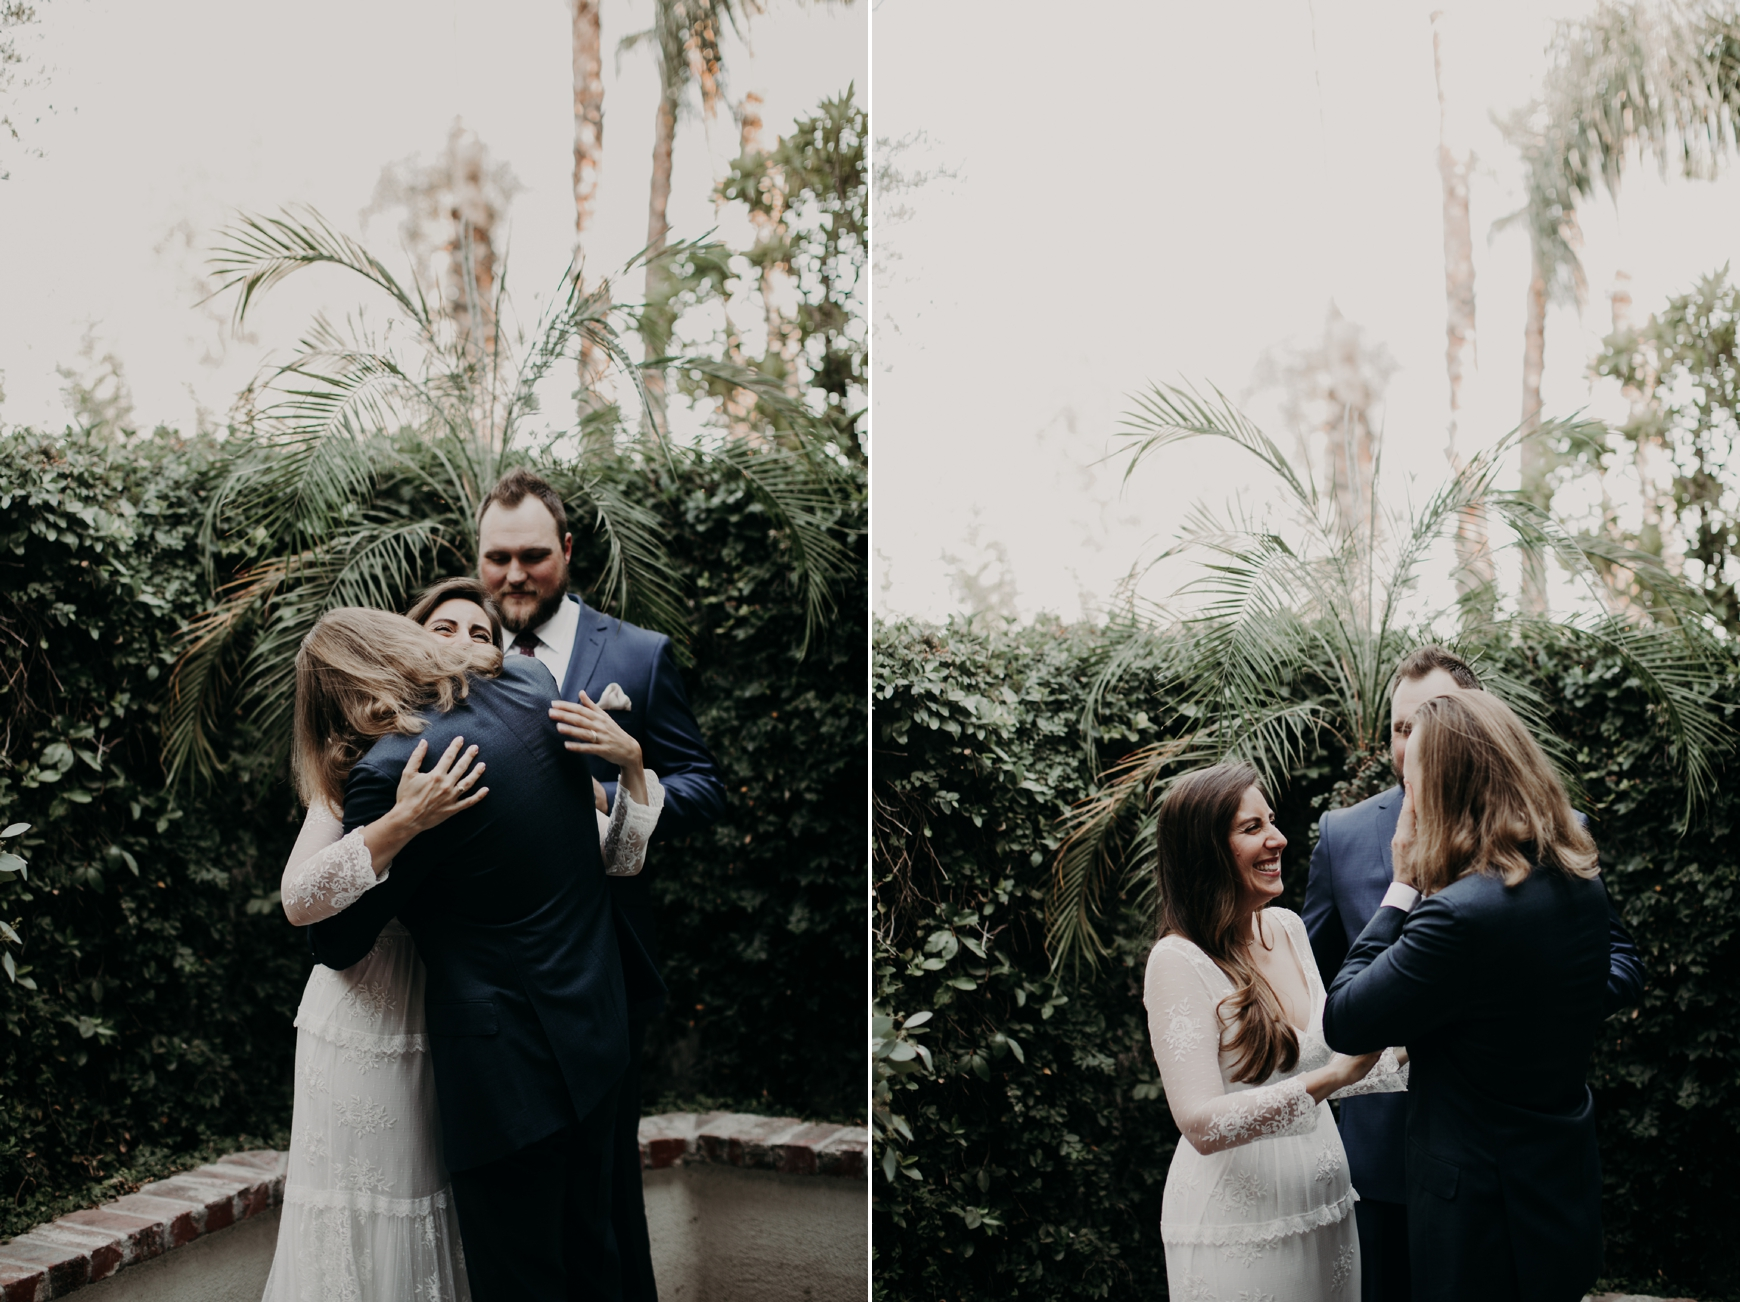 The Colony Palms Hotel Palm Springs Wedding Jaclyn & Tyson Emily Magers Photography-221.jpg